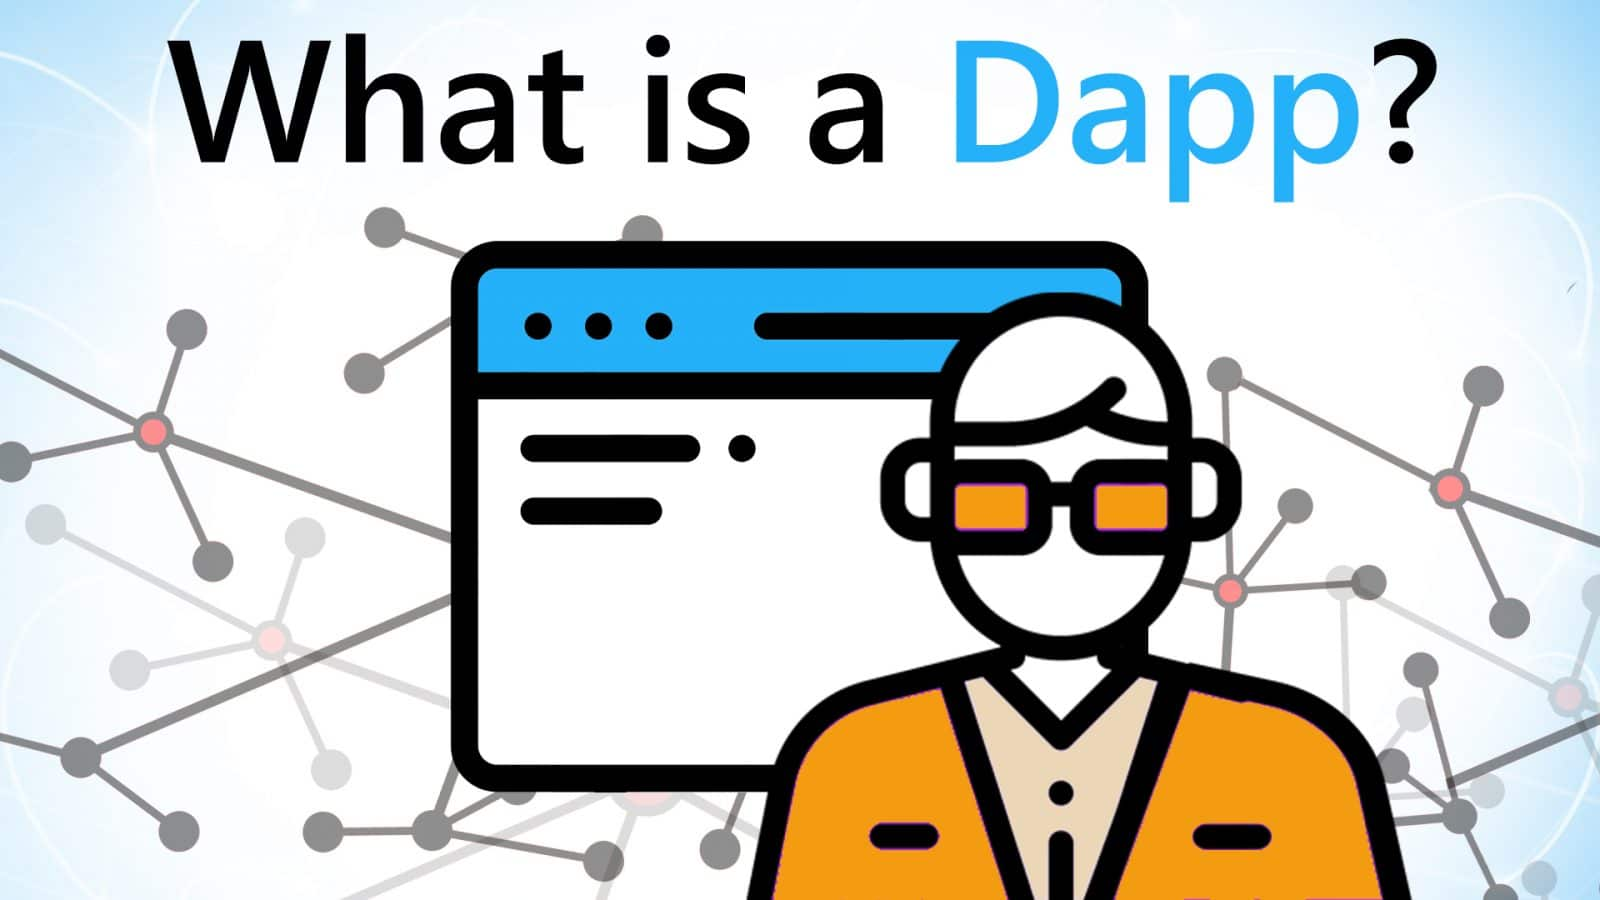 Video Guide: What is a Dapp?